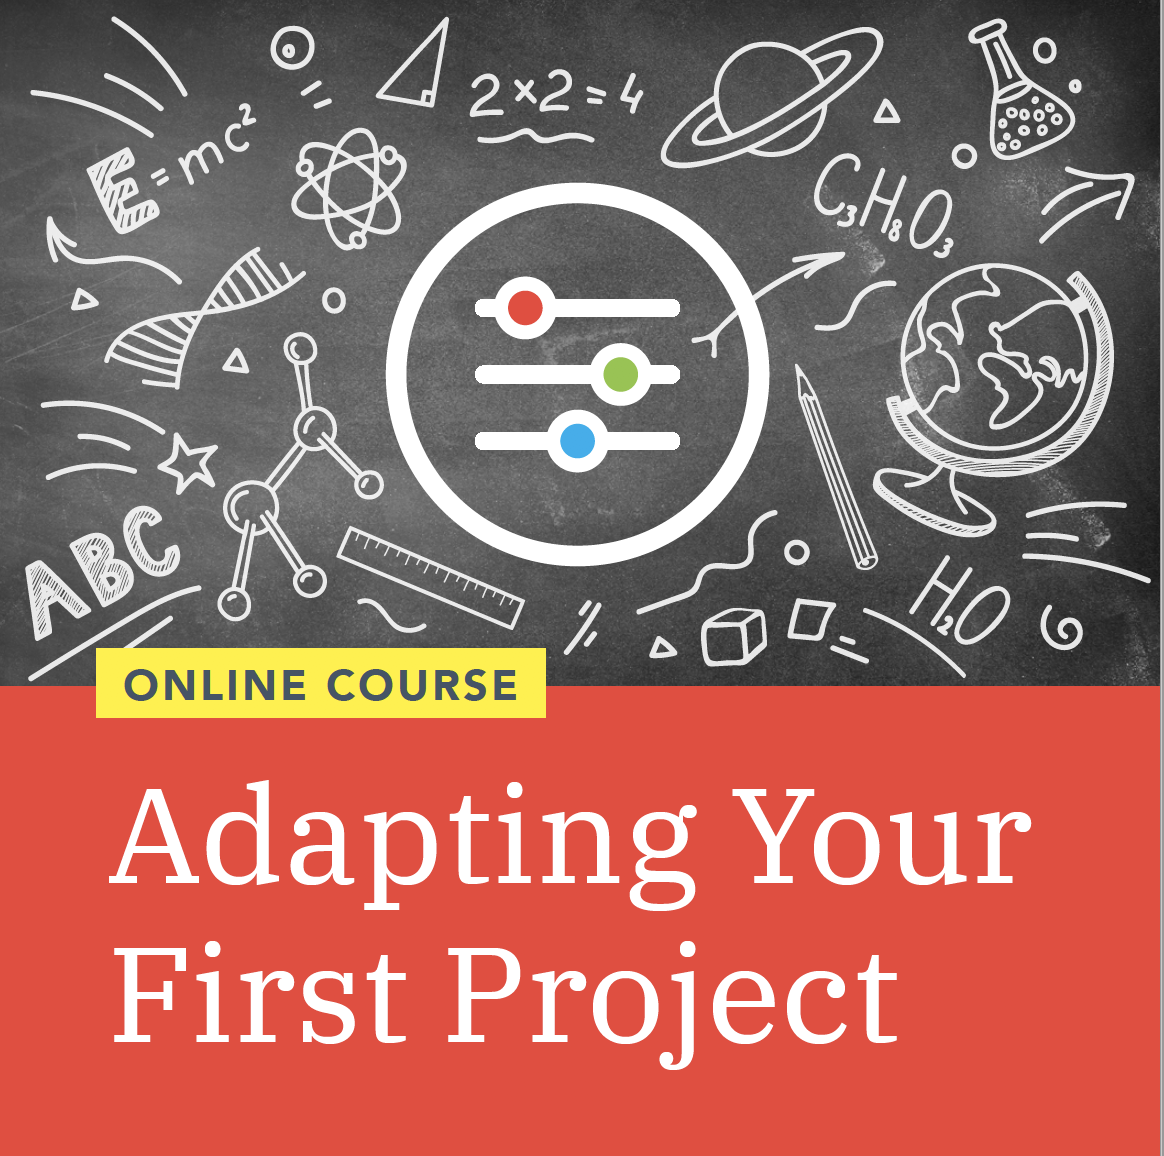 Adapt Your First Project